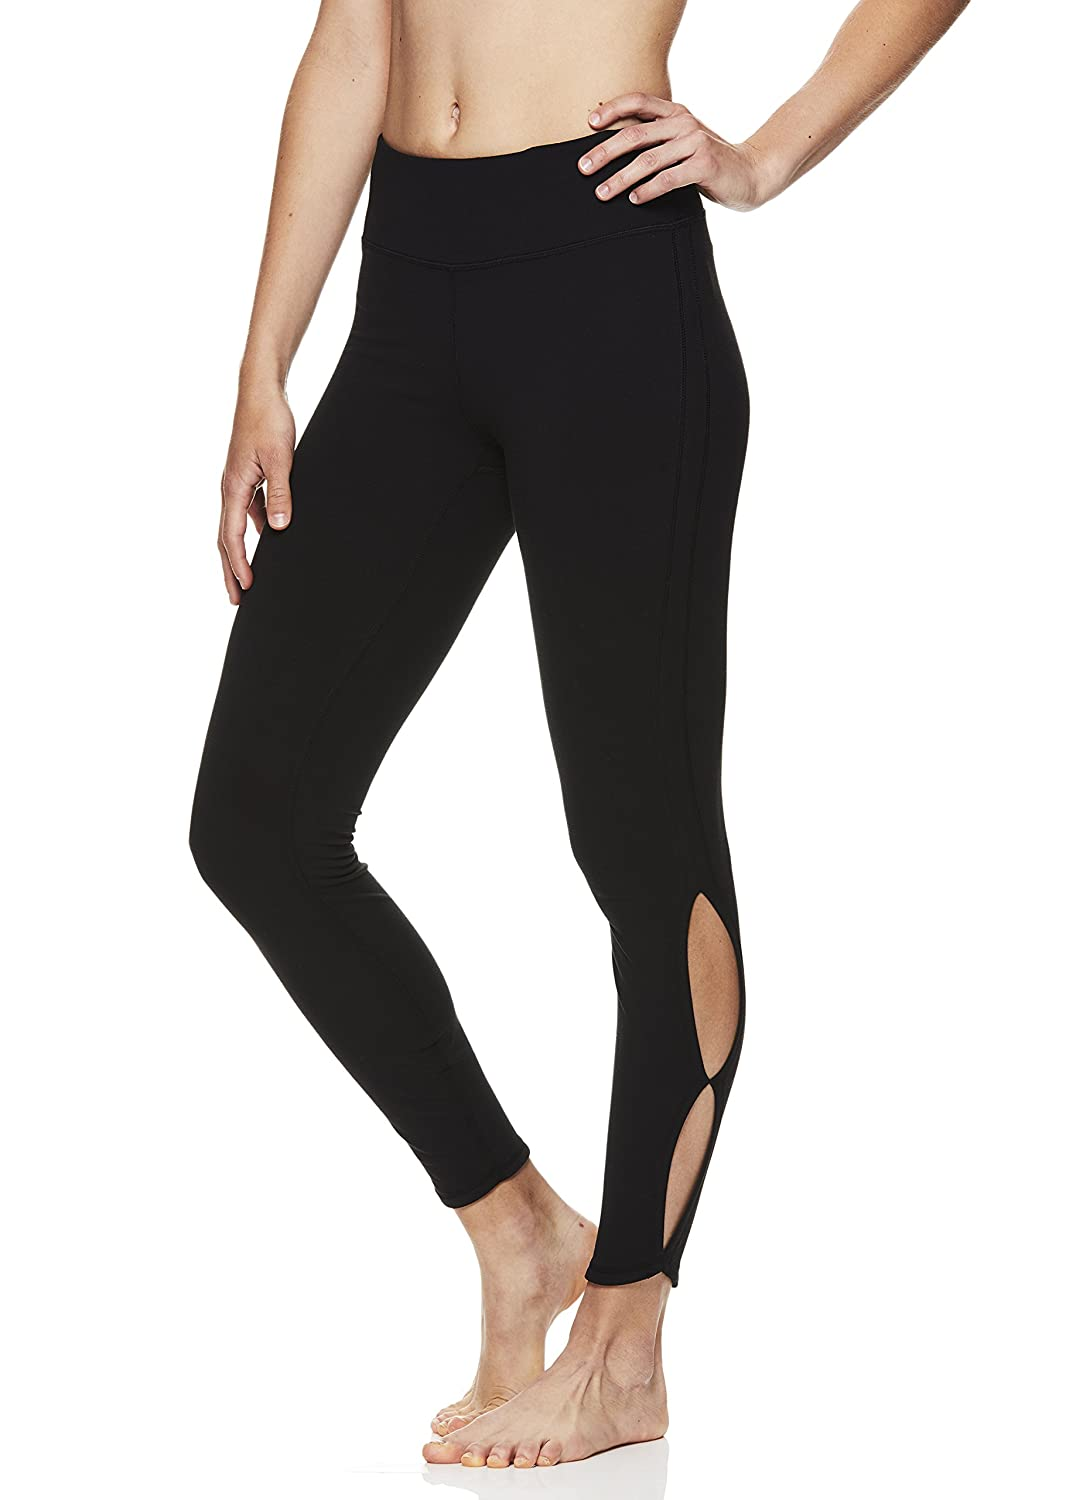 ec31c47d95 The Gaiam Athletic Tights are performance and fashion merged beautifully.  These leggings feature a high back rise and a wide waistband for a stay put  fit ...